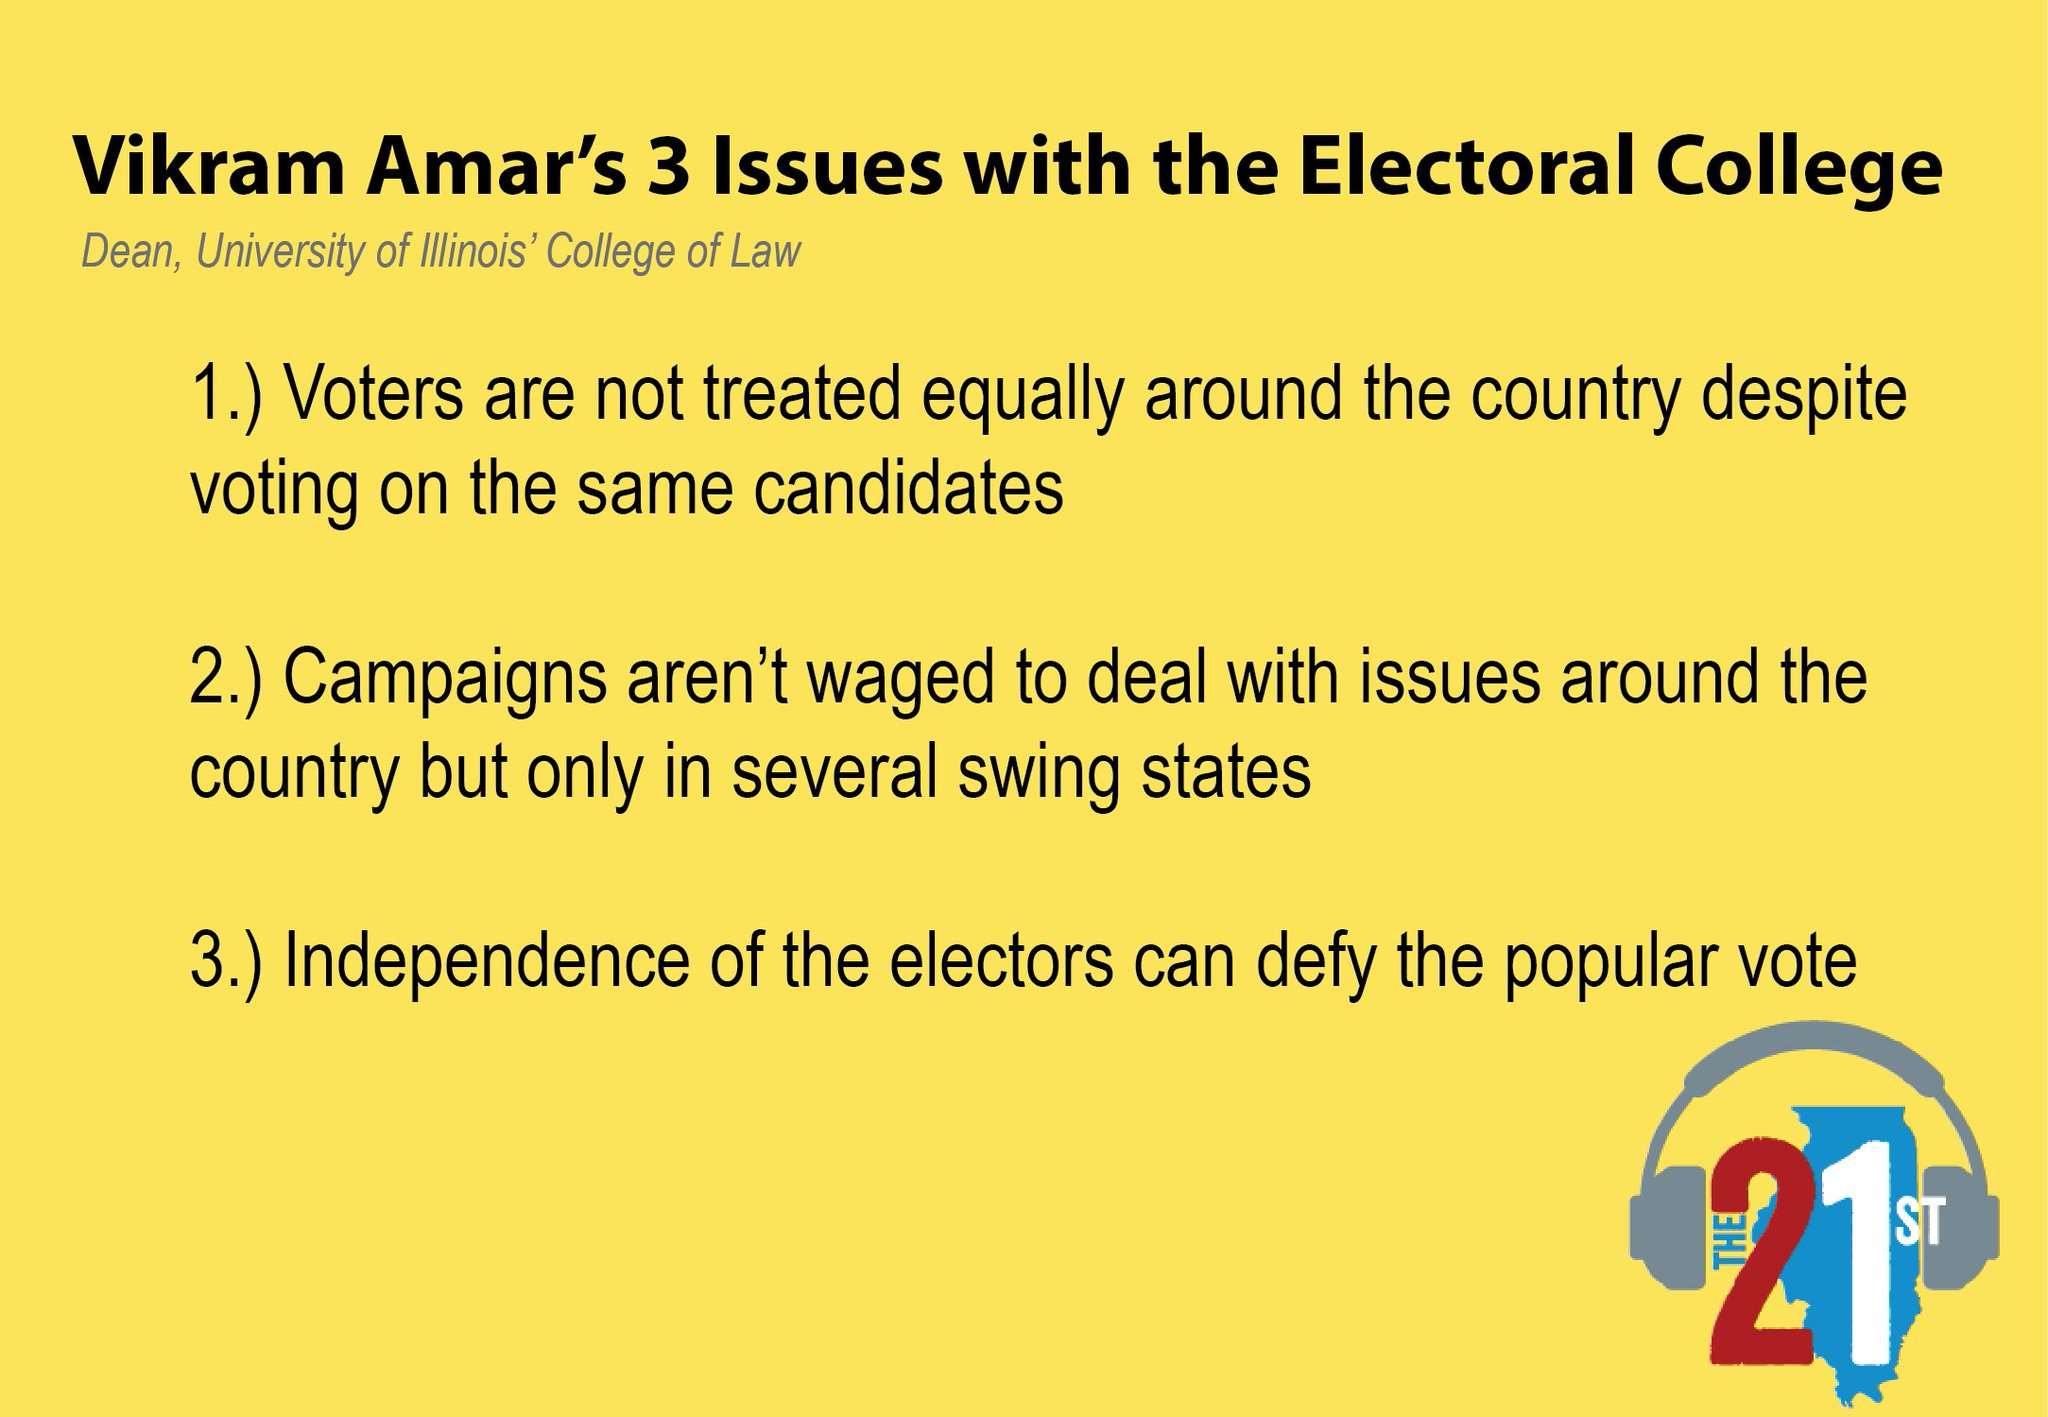 holiday book guide 2016 electoral college explained lucy smith s we spoke vikram amar from the uillinoislaw about the electoral college